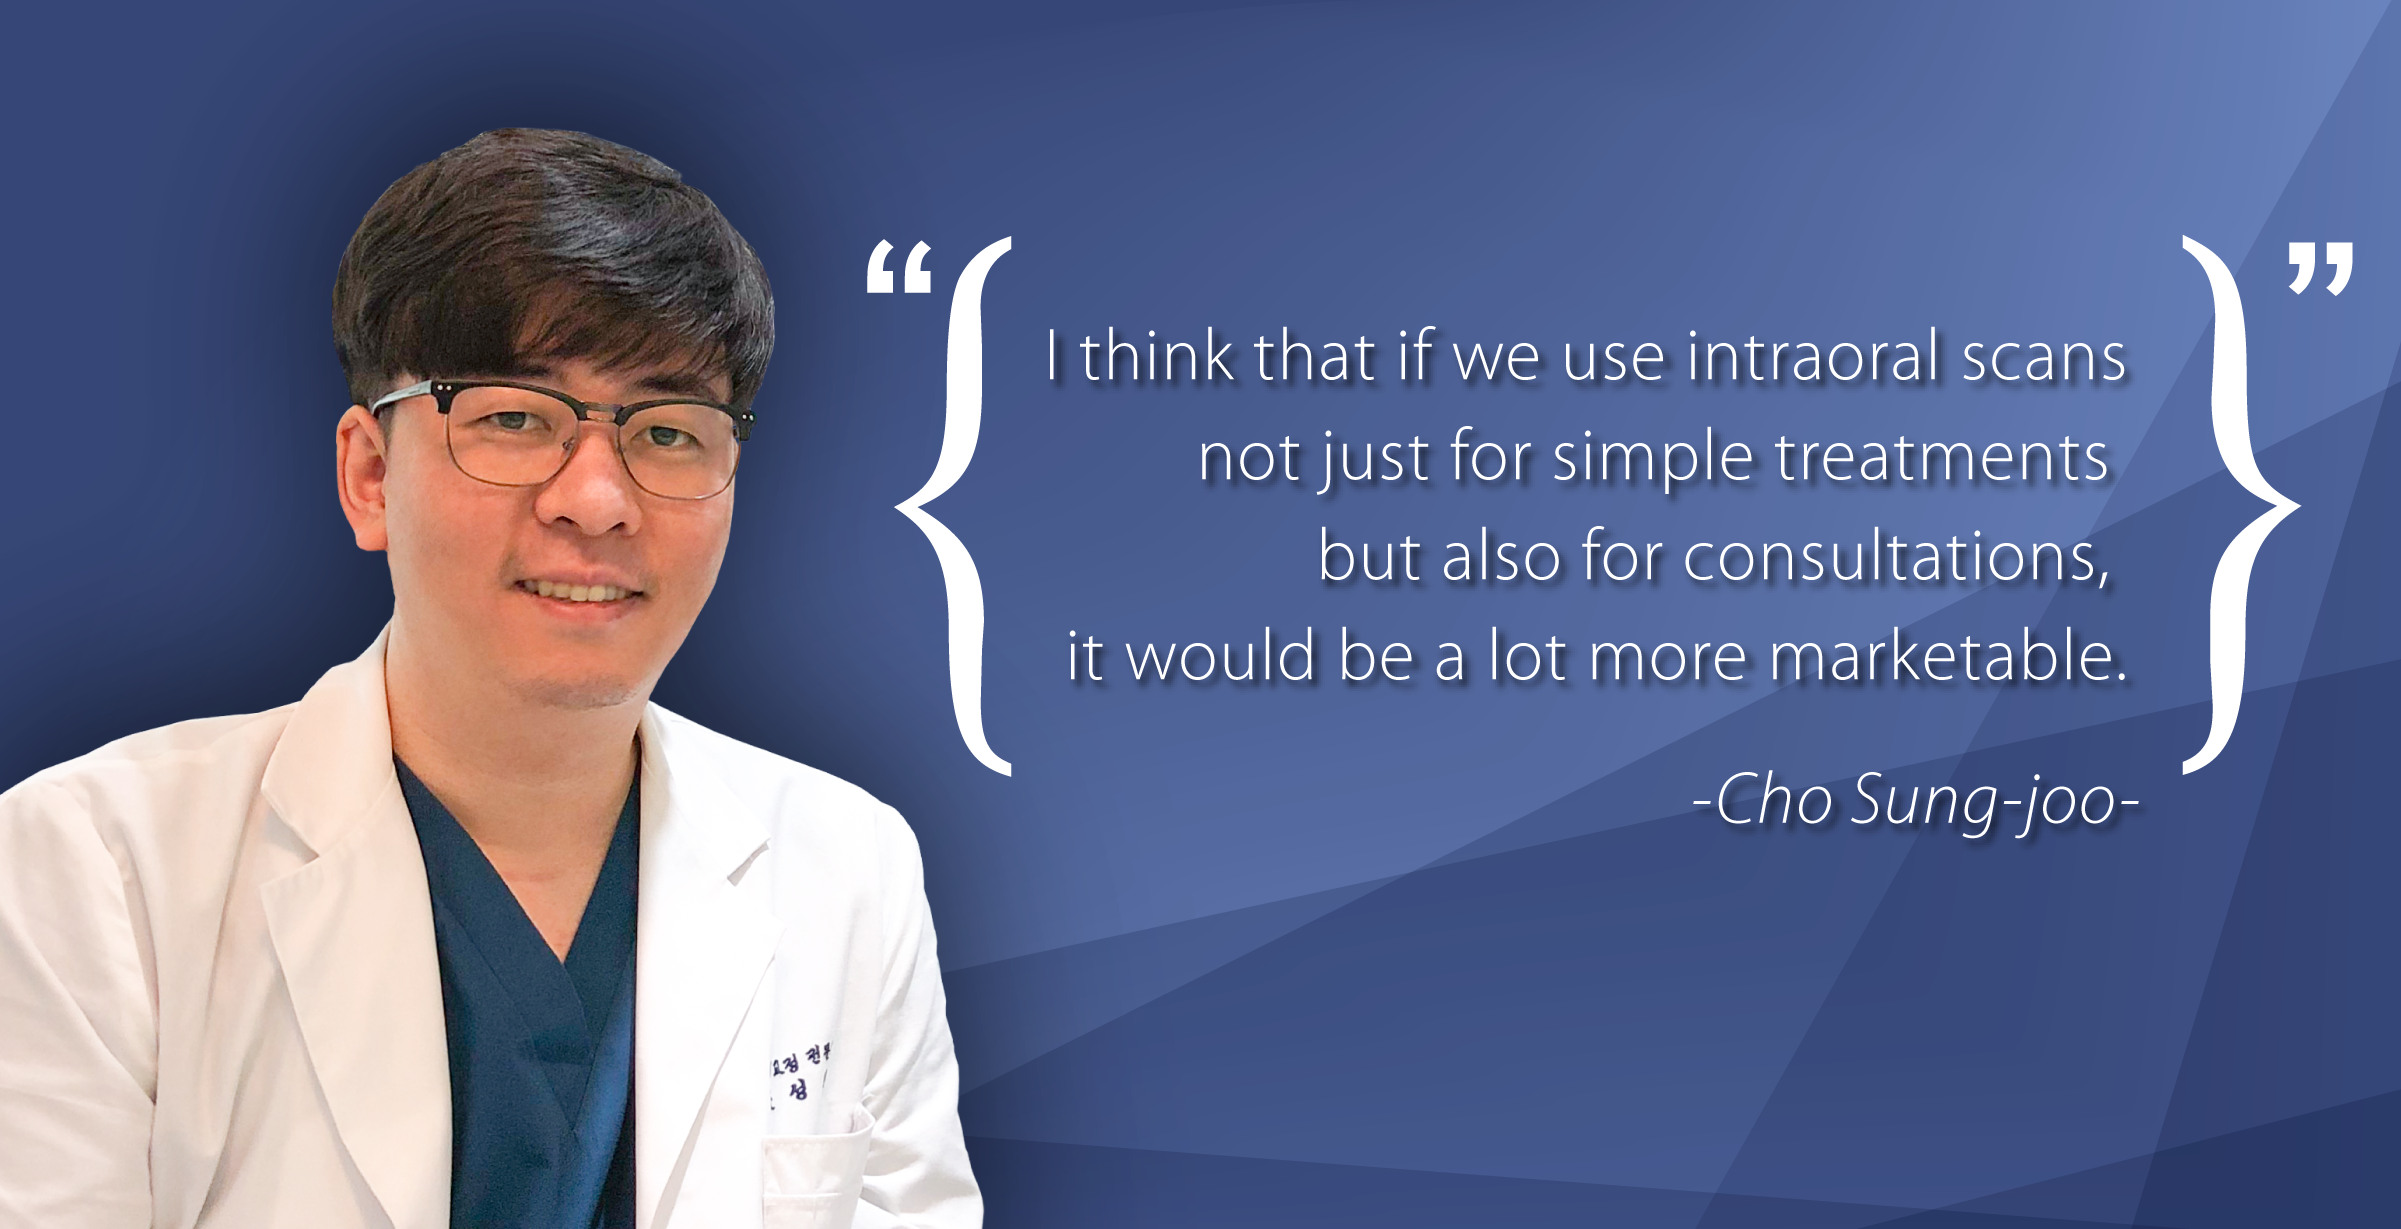 Interview: Dr. Cho Sung-joo on Why Digital Dentistry is the Future